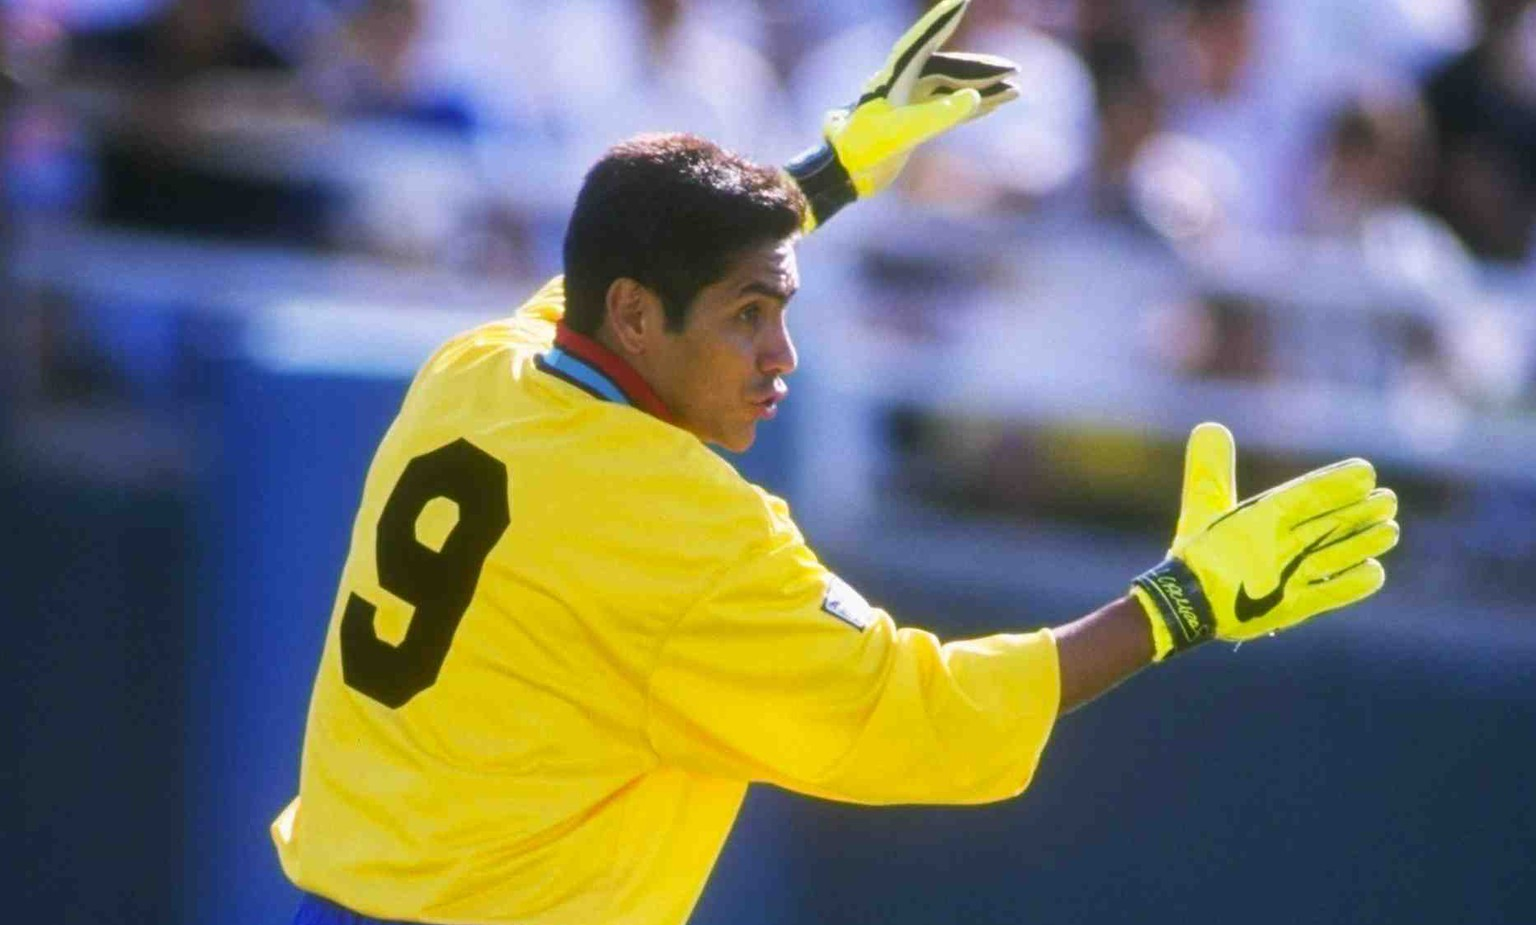 15 Jun 1997: Jorge Campos of the Los Angeles Galaxy in action during a game against the Tampa Bay Mutiny at the Rose Bowl in Pasadena, California. The Galaxy won the game, 4-1.